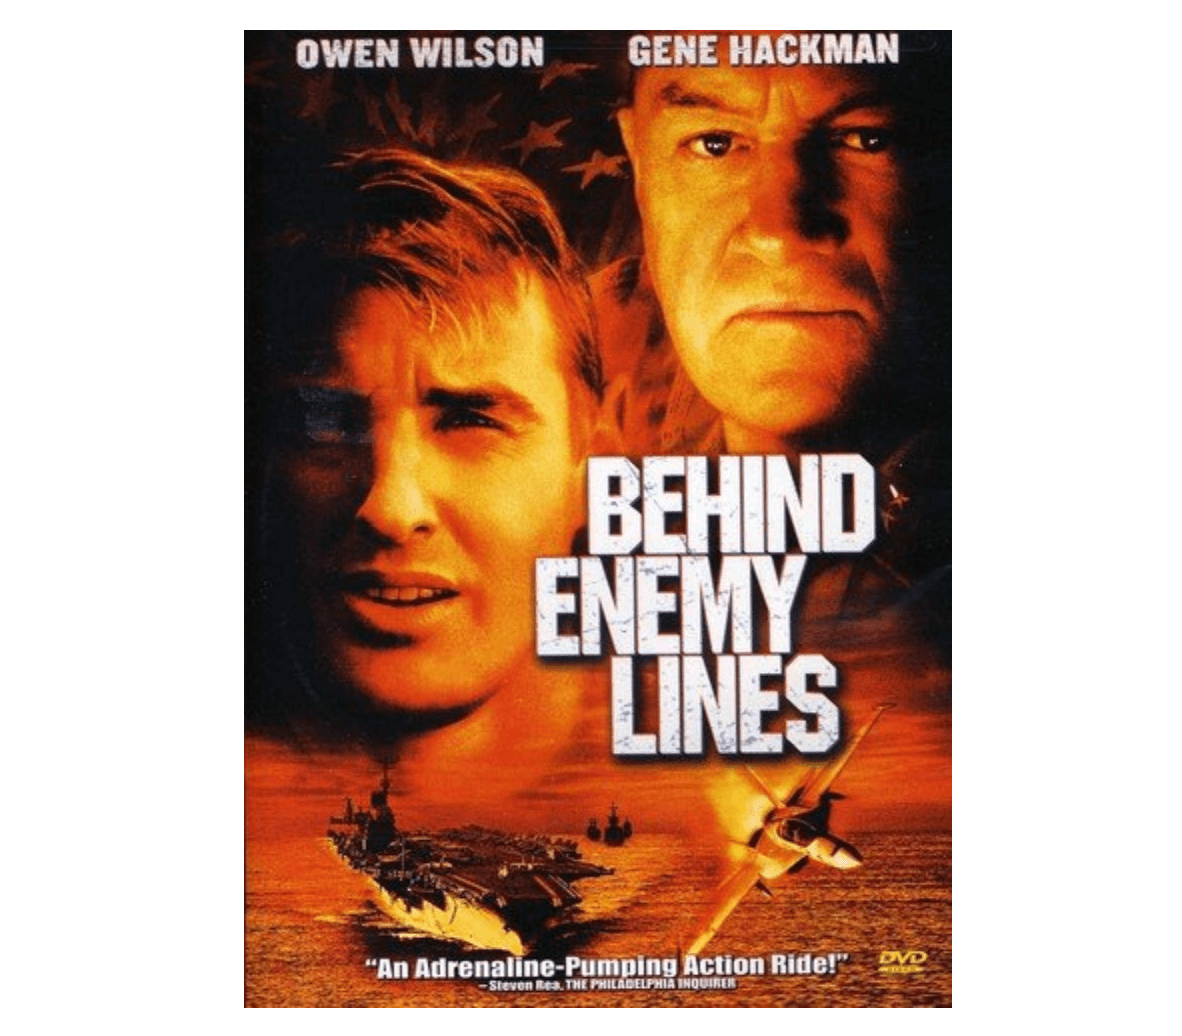 Behind enemy lines dvd cover